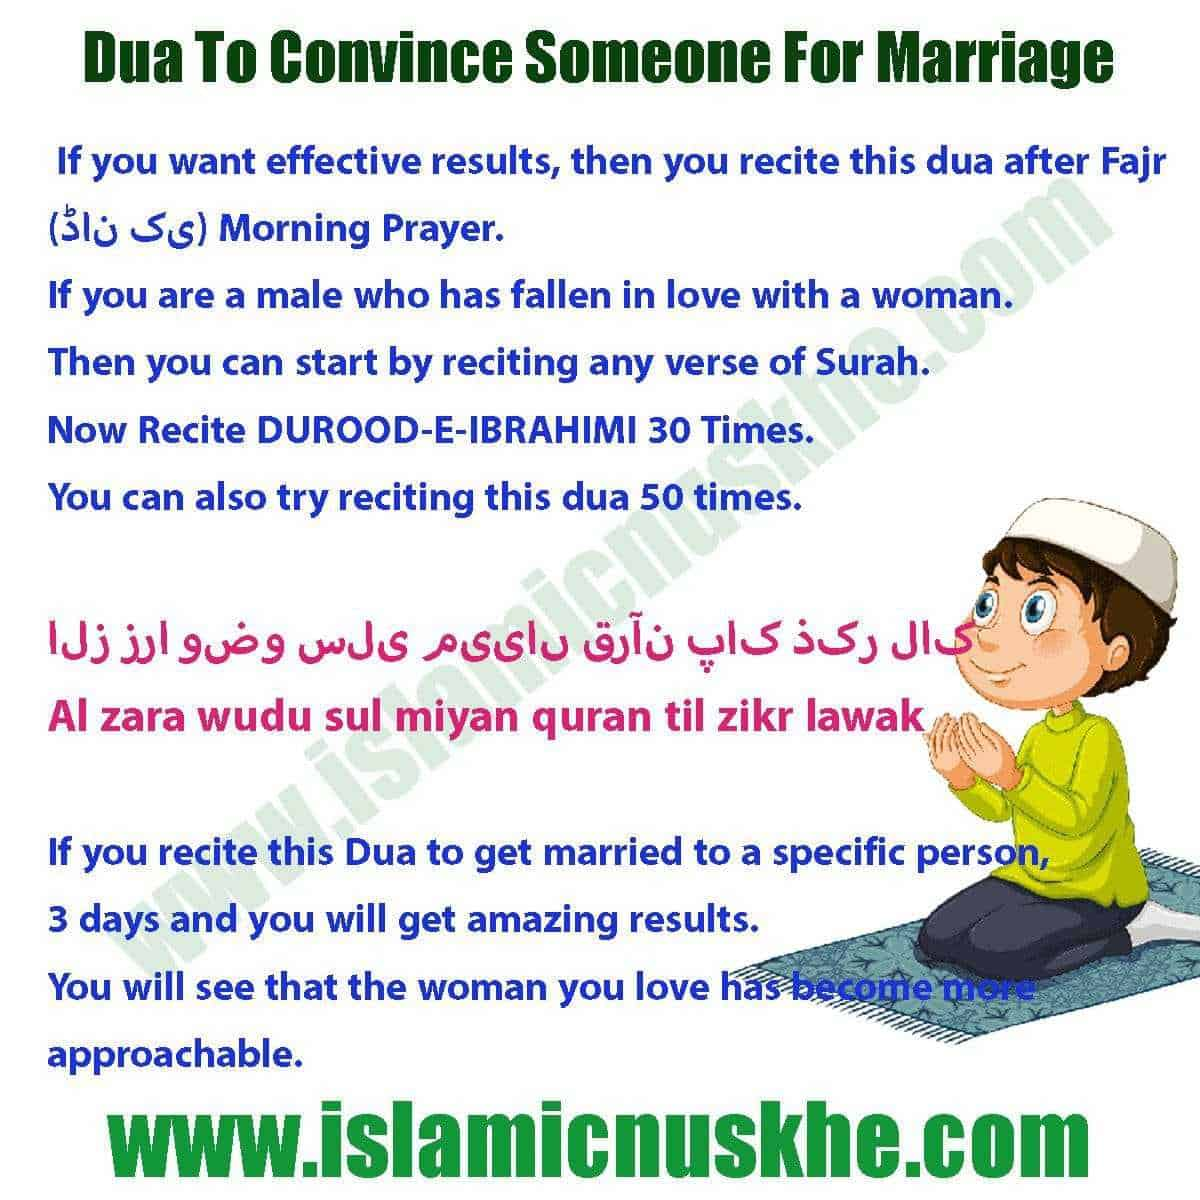 Here is Dua To Convince Someone For Marriage Step by Step -